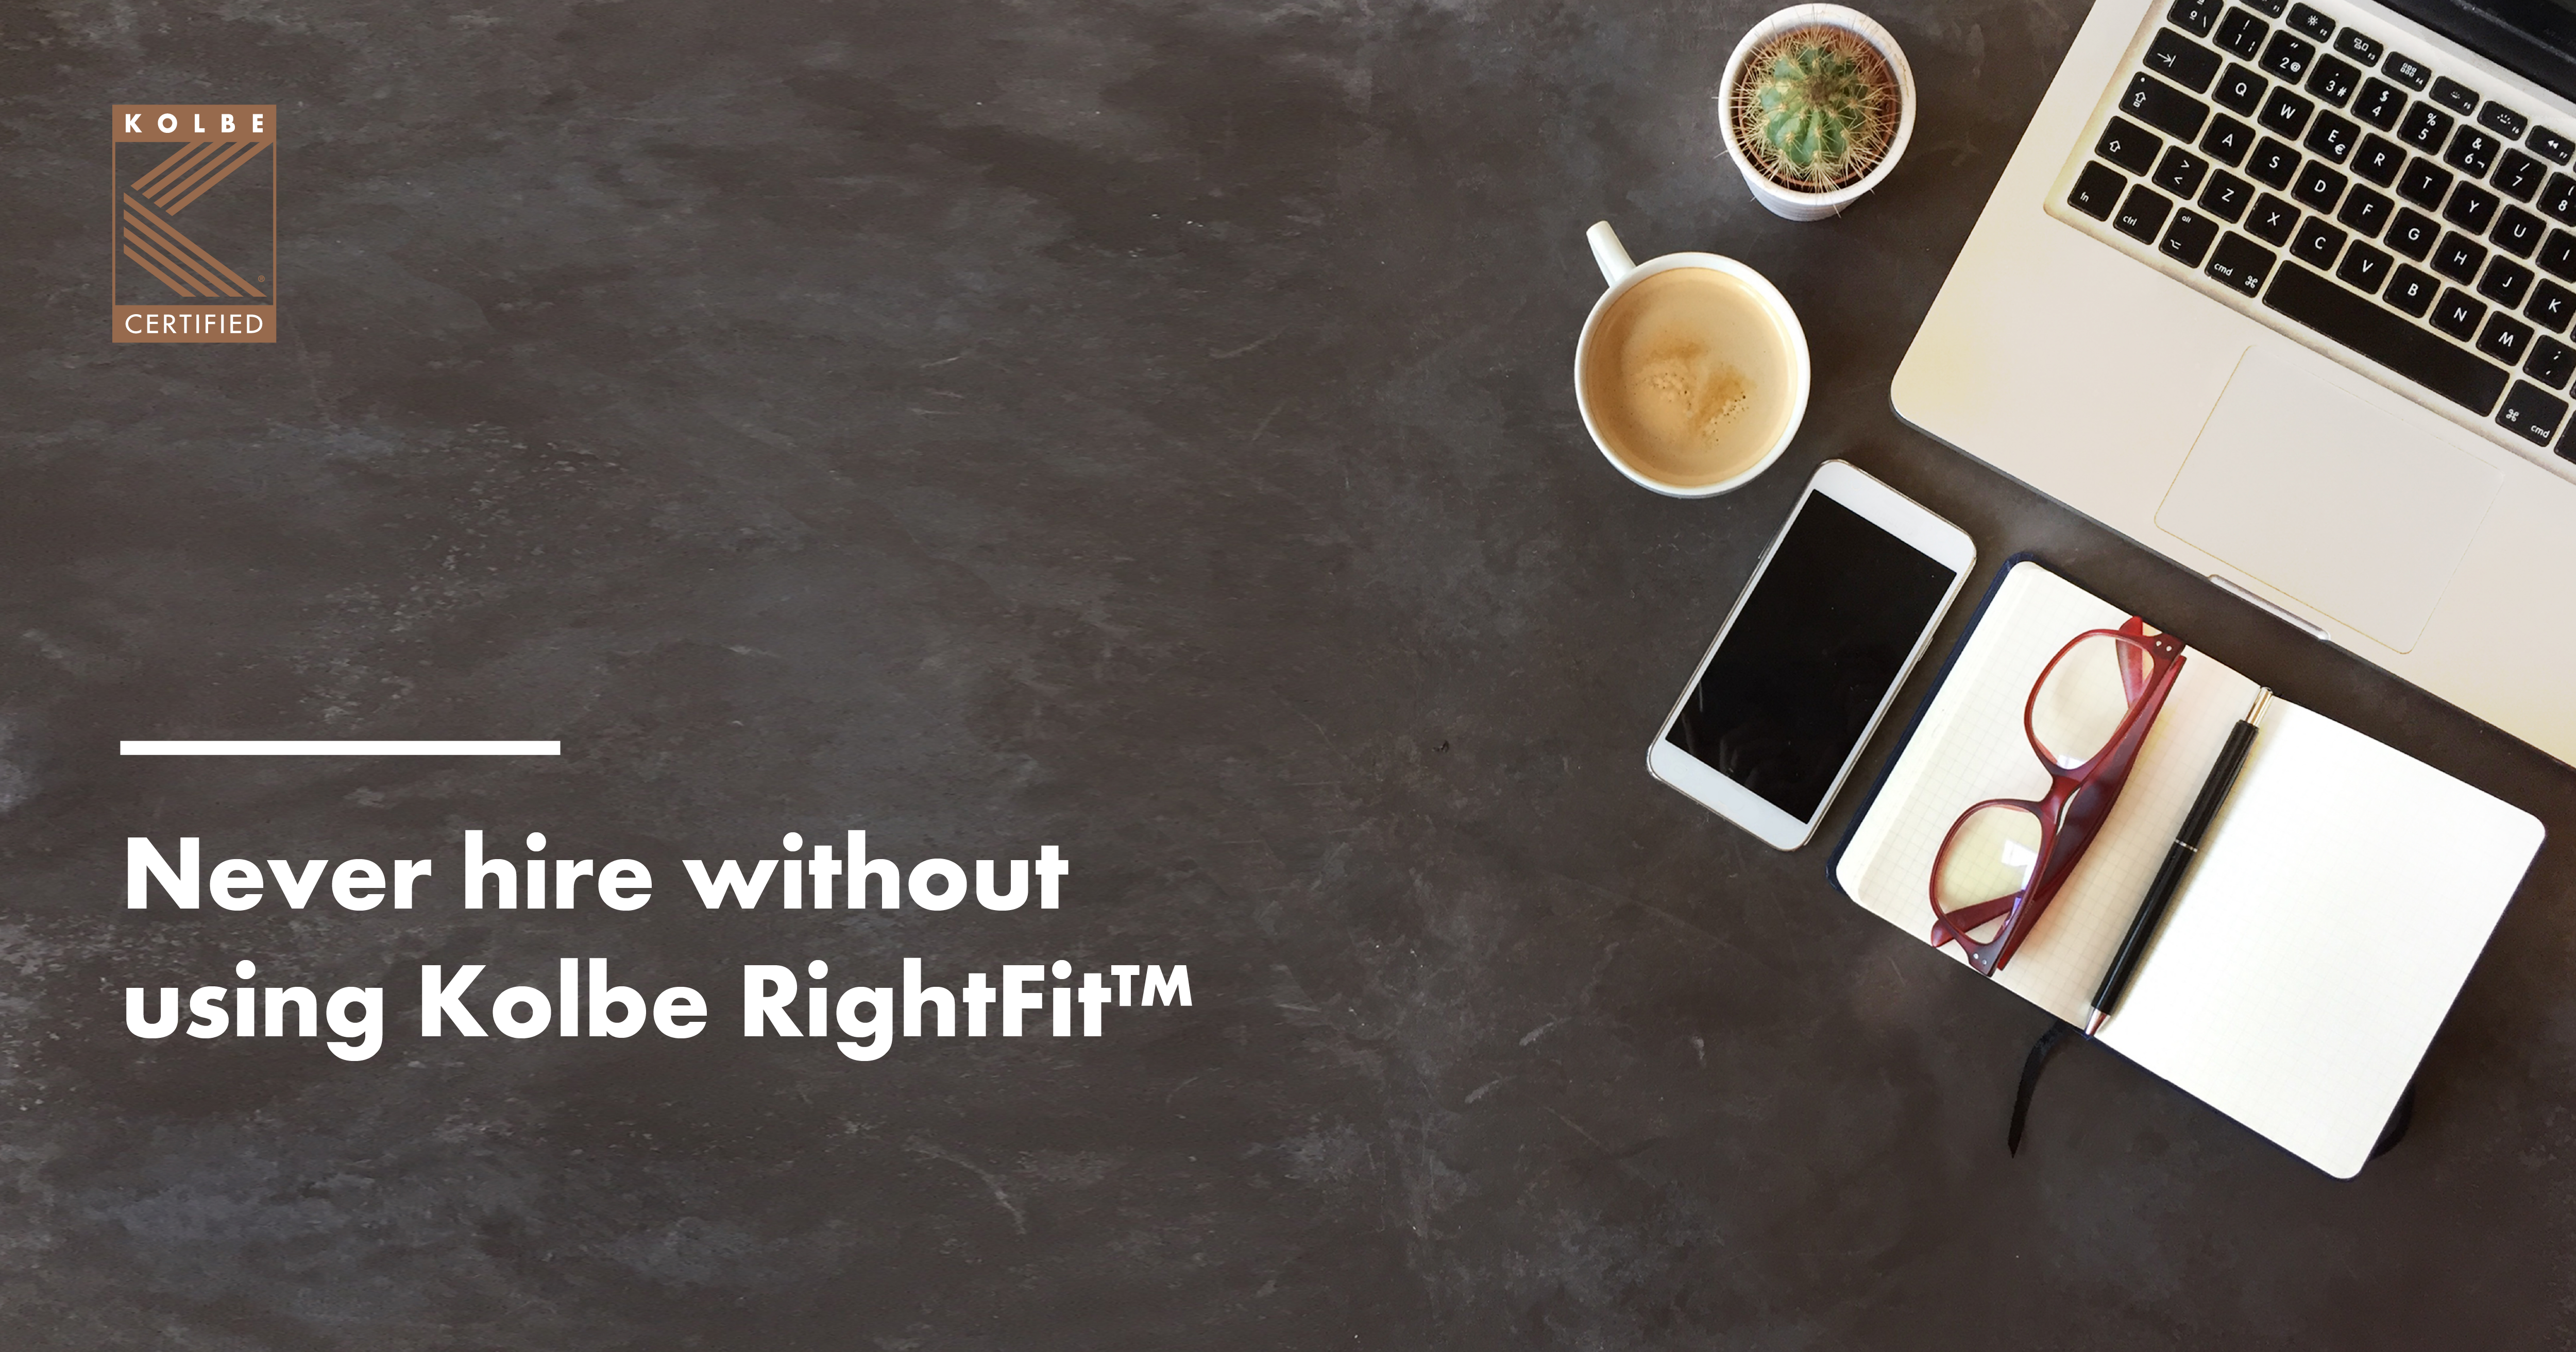 Never hire without using Kolbe RightFit™